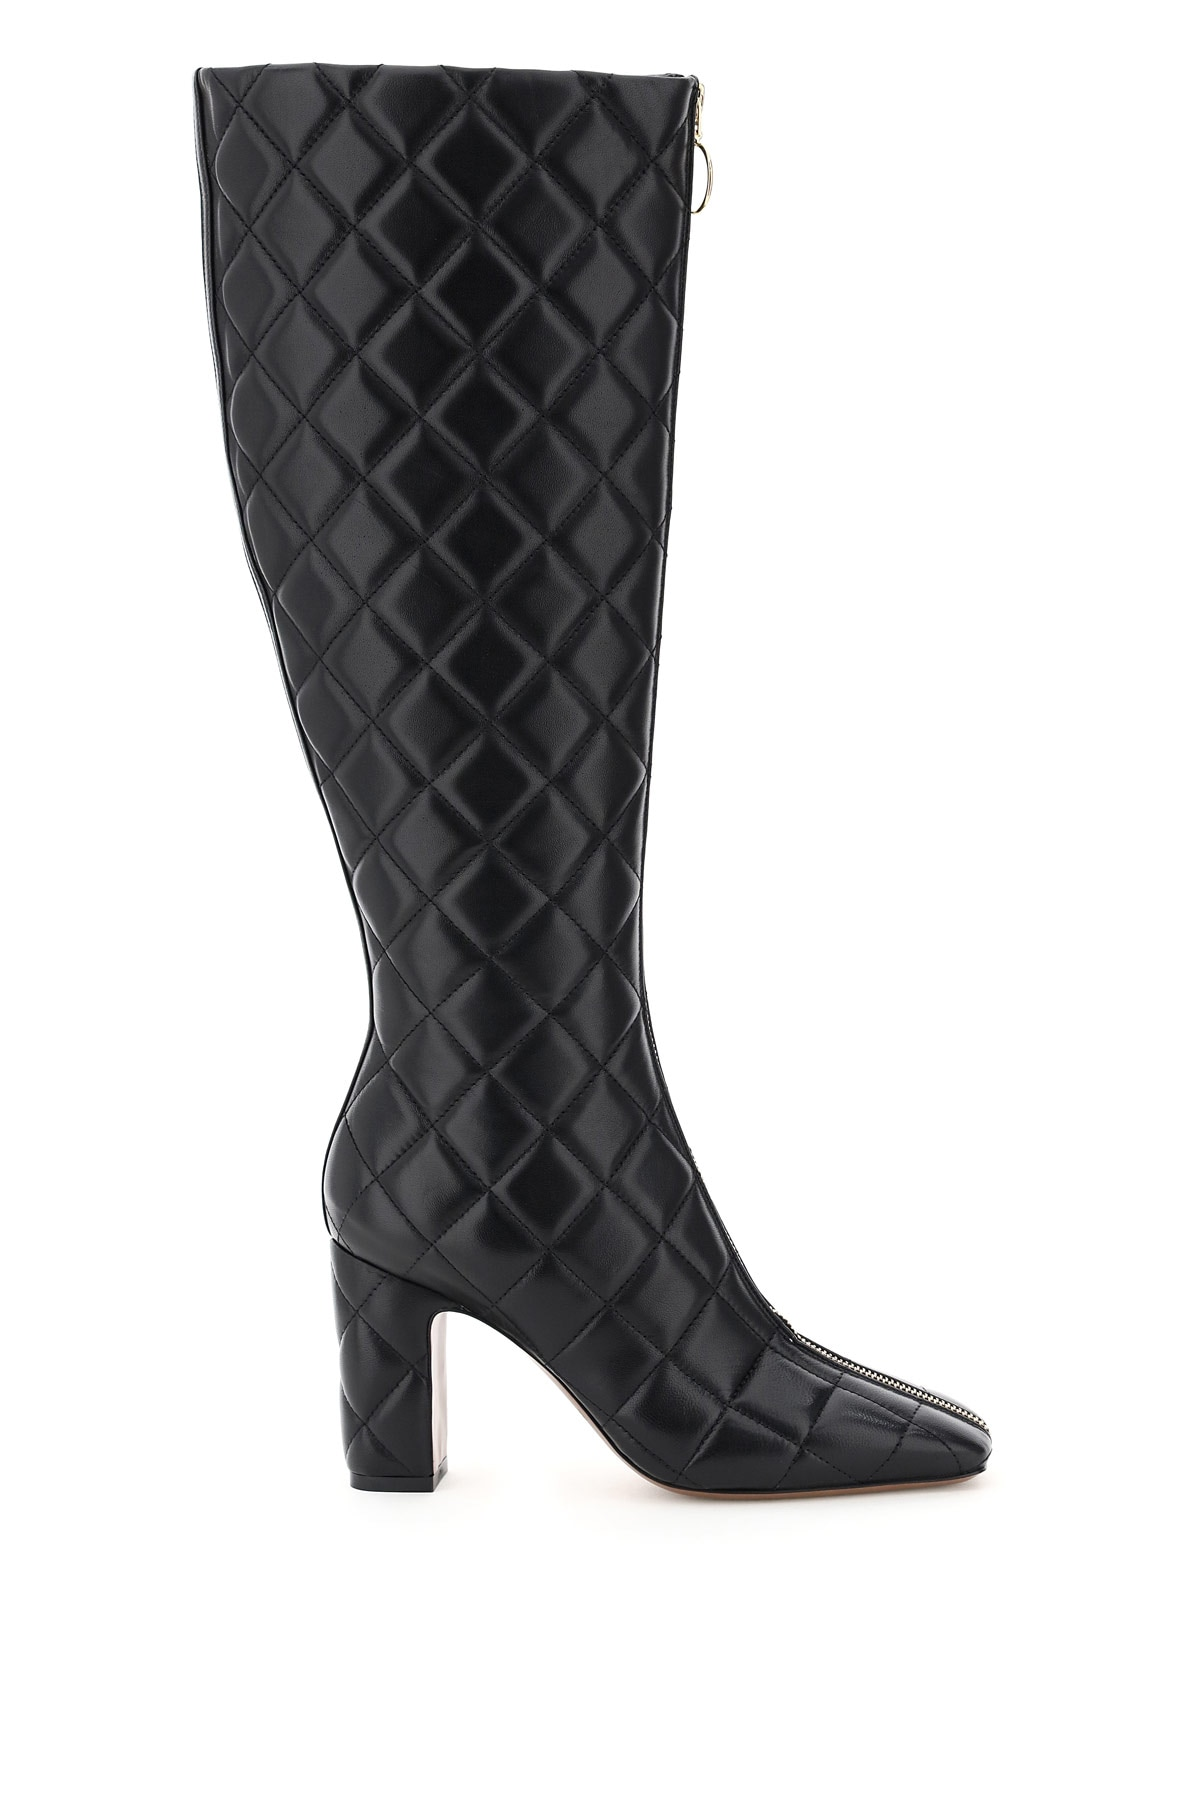 L'autre Chose High Boots In Quilted Nappa 36 Black Leather